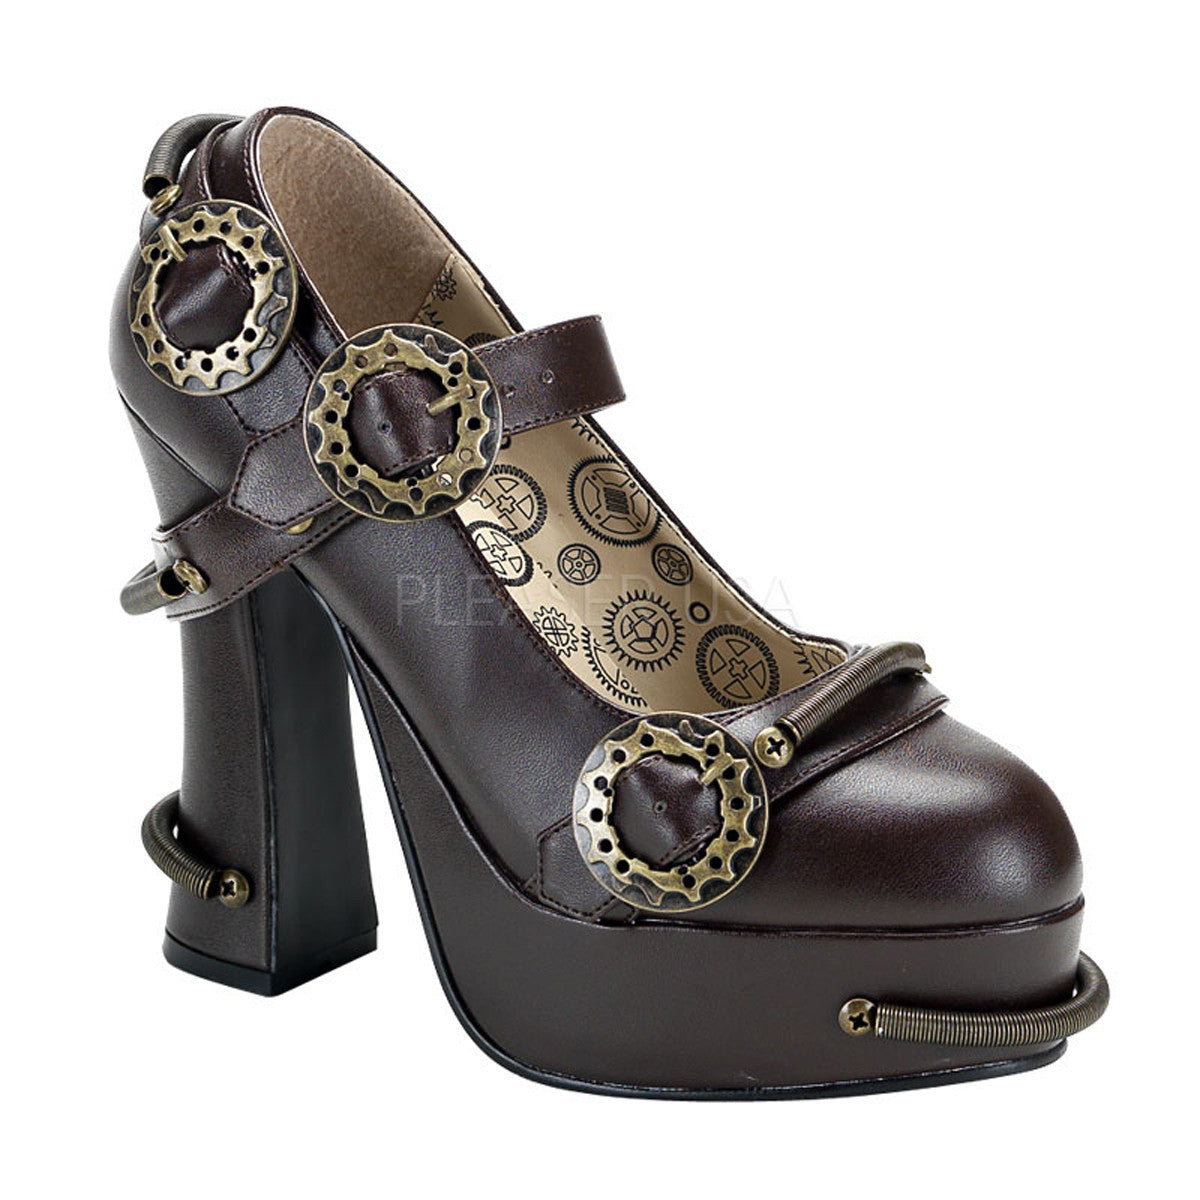 DEMON-29 Steampunk Shoes